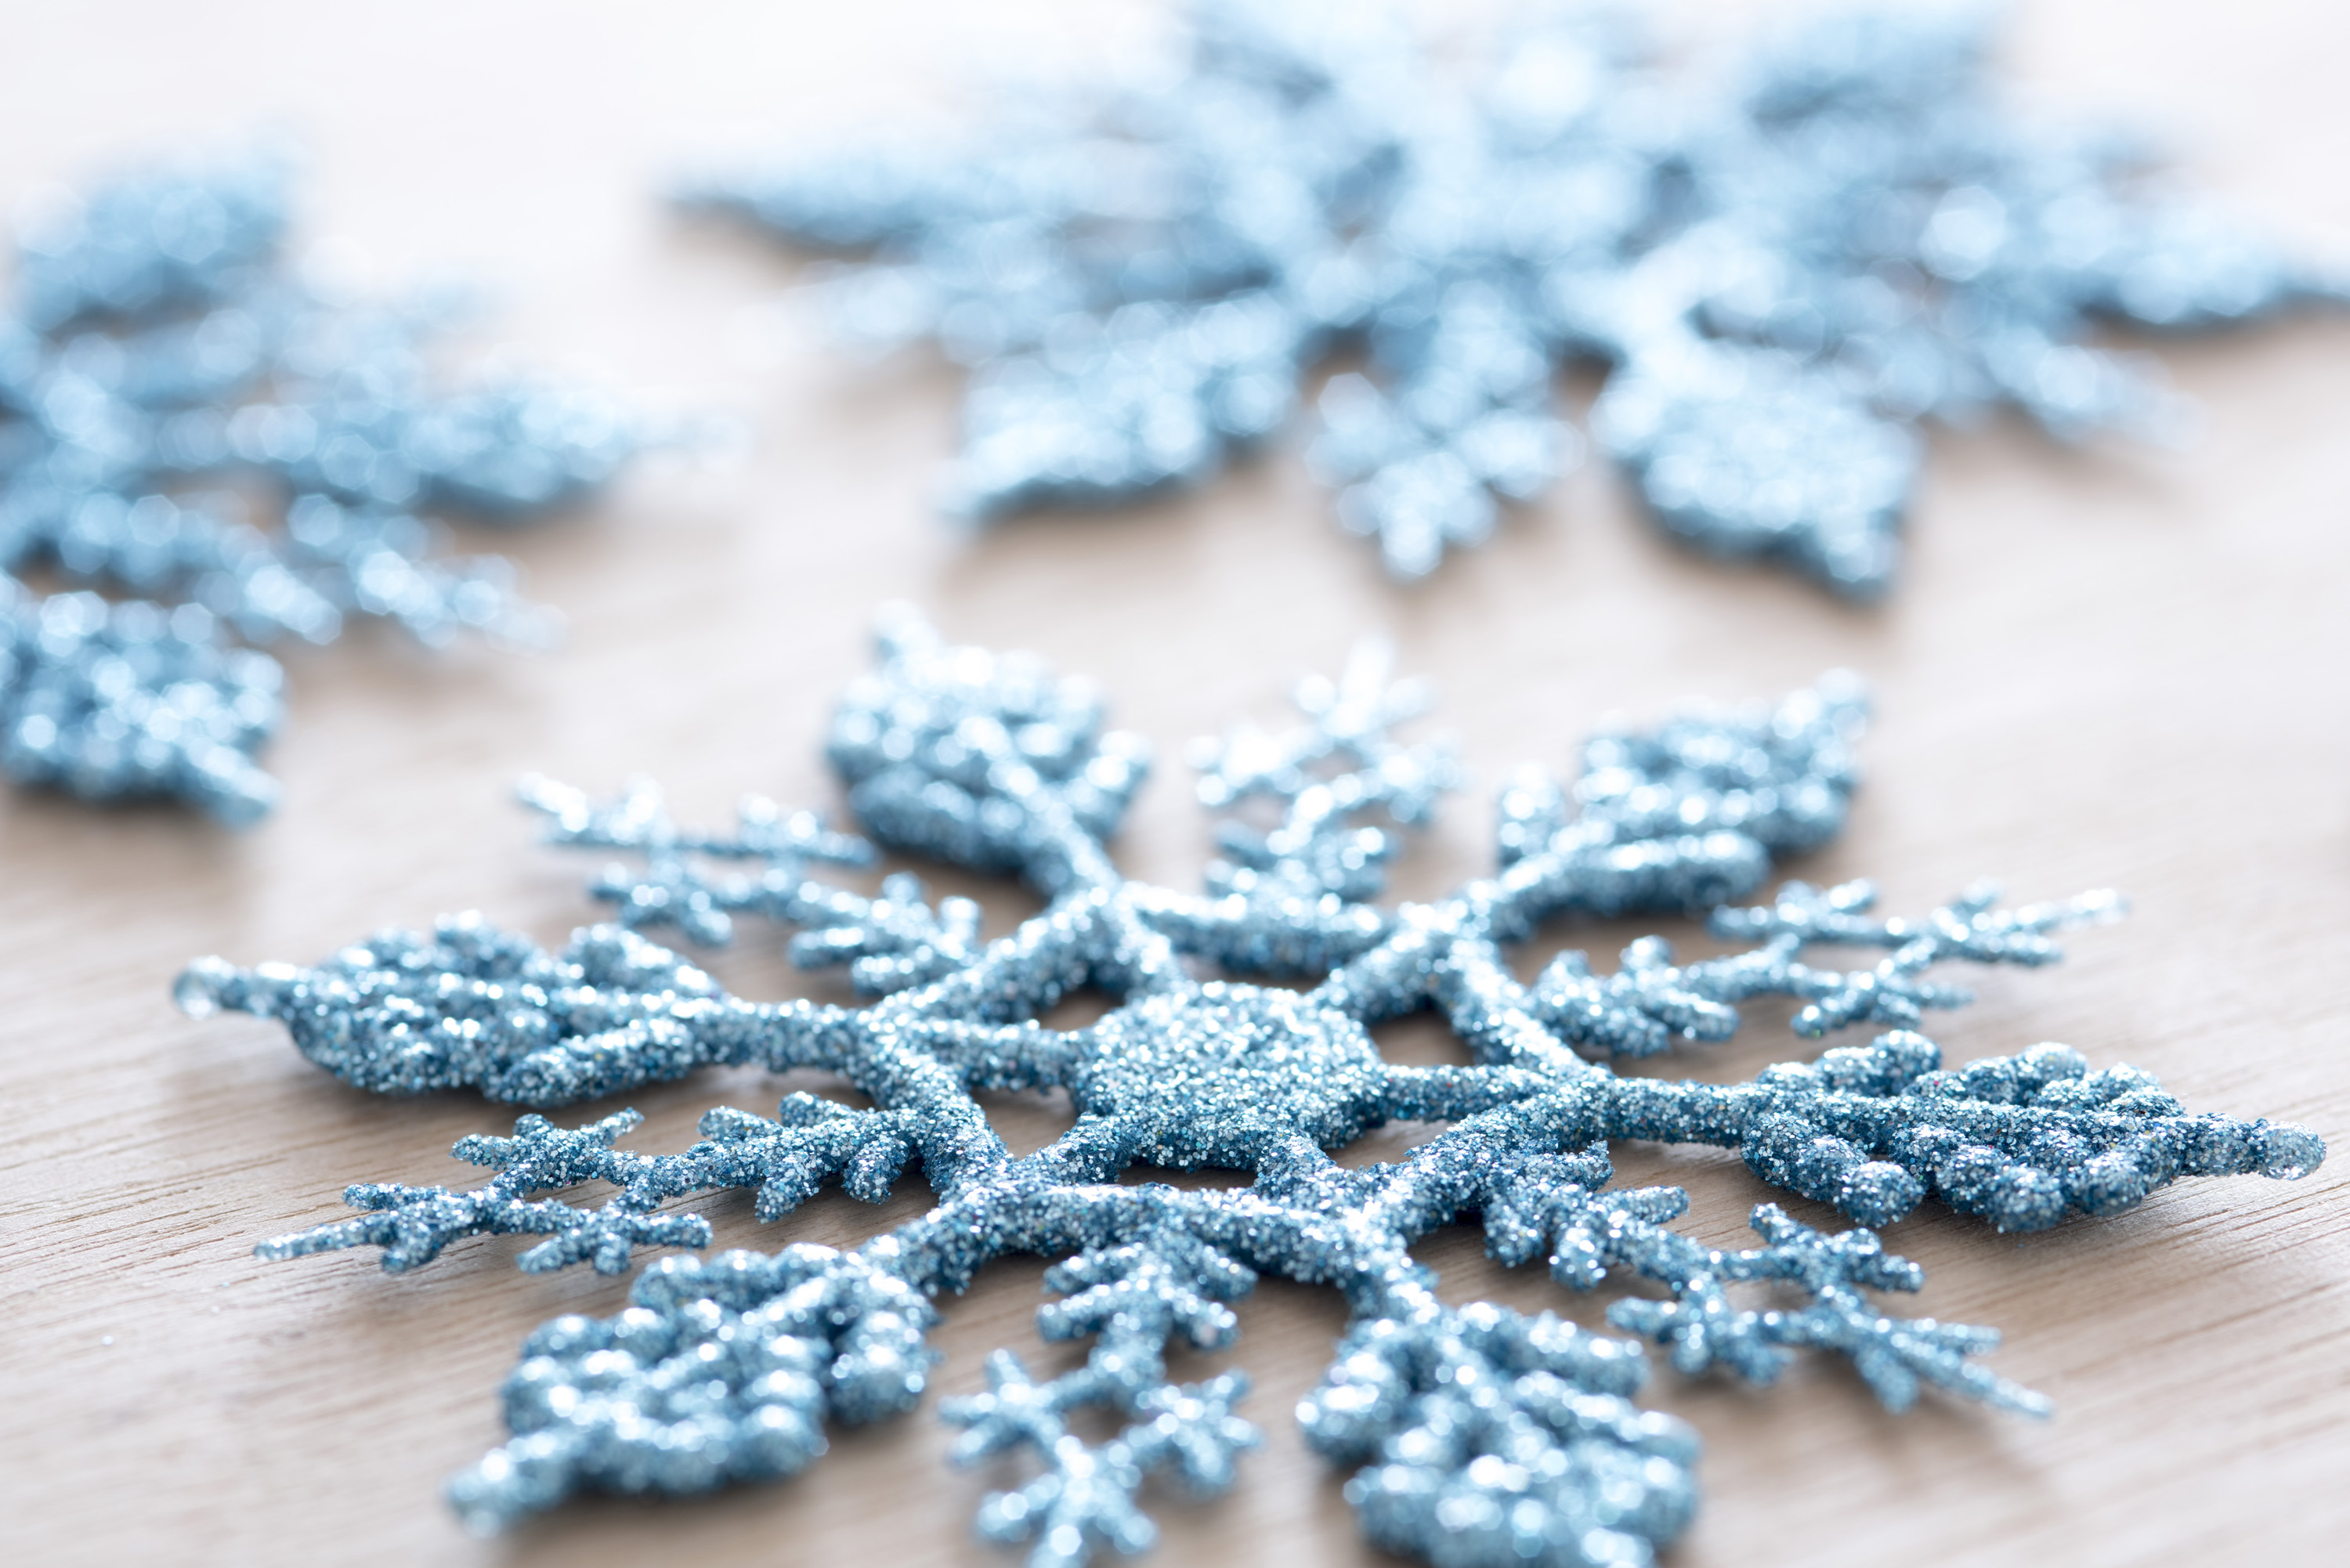 Close up shot of a glittery plastic blue snowflake decoration